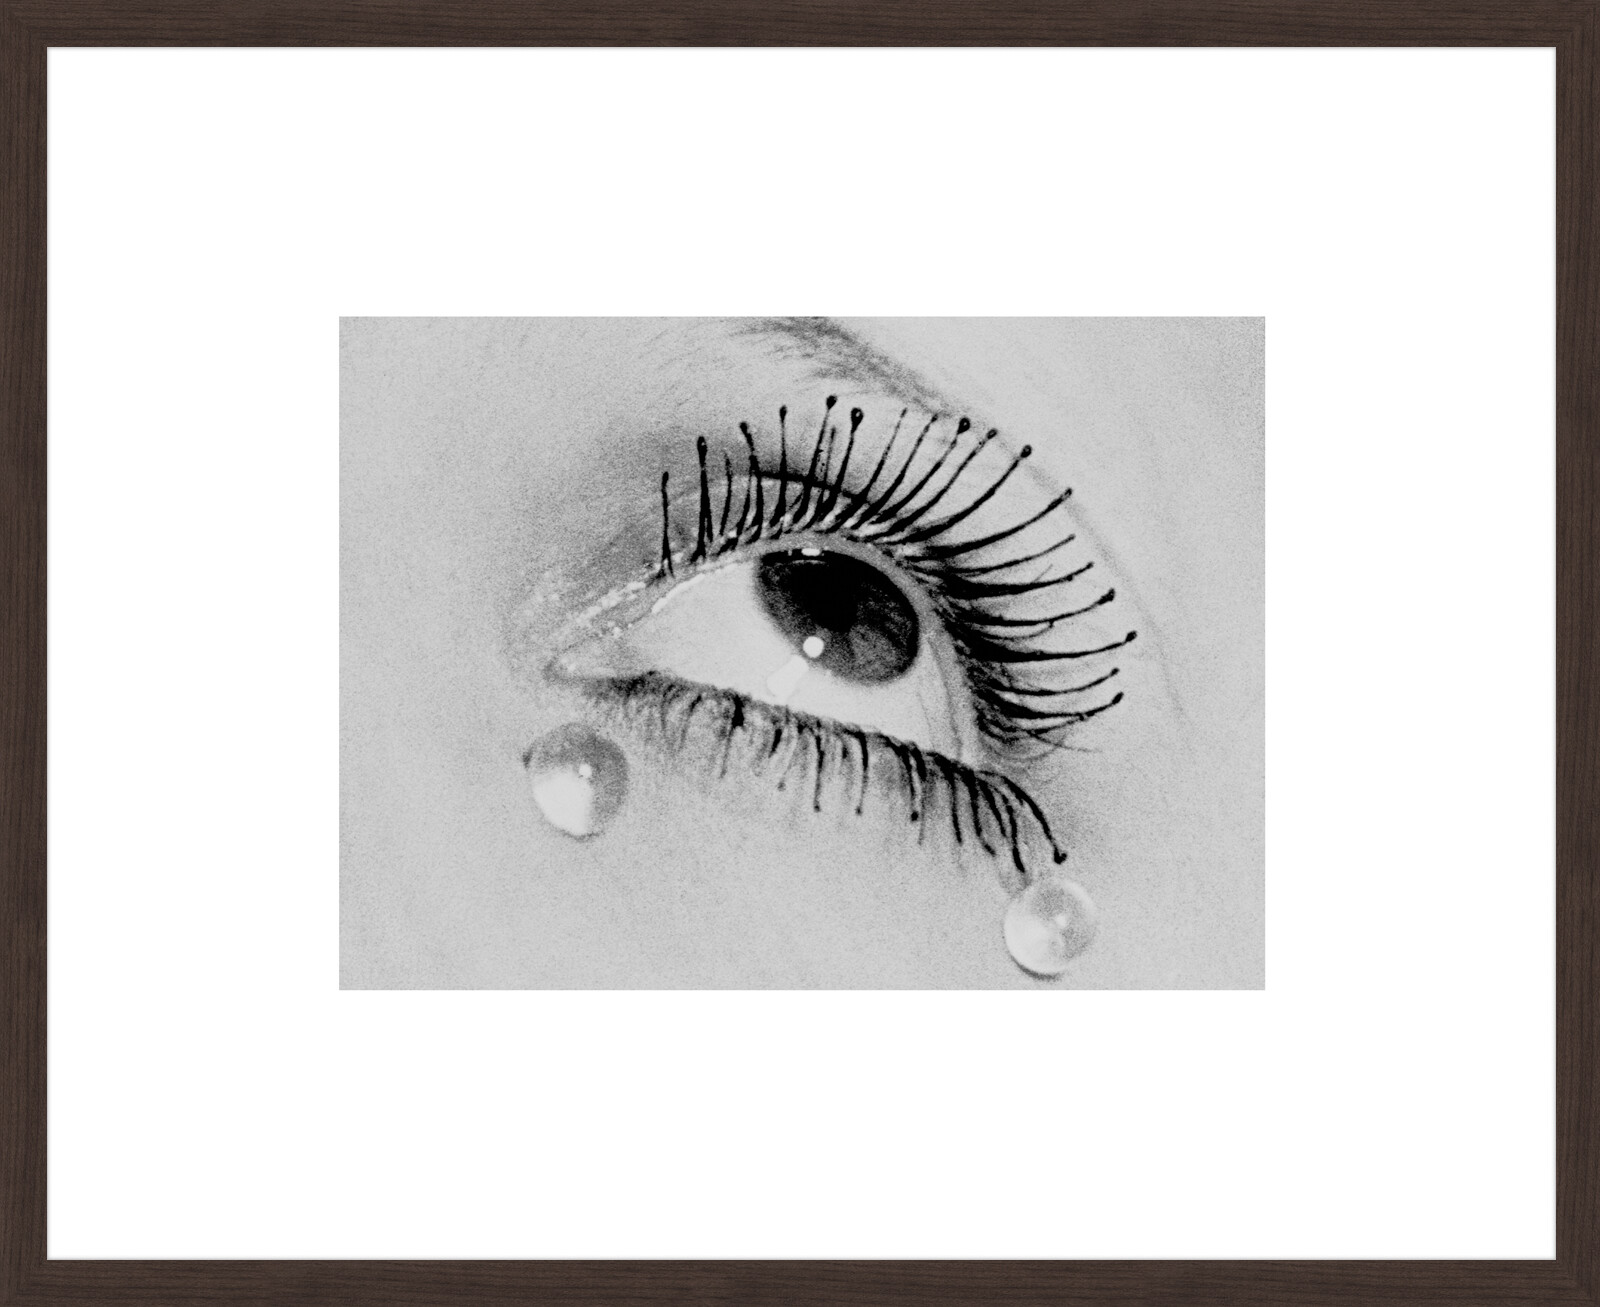 Tears, 1930 by Man Ray